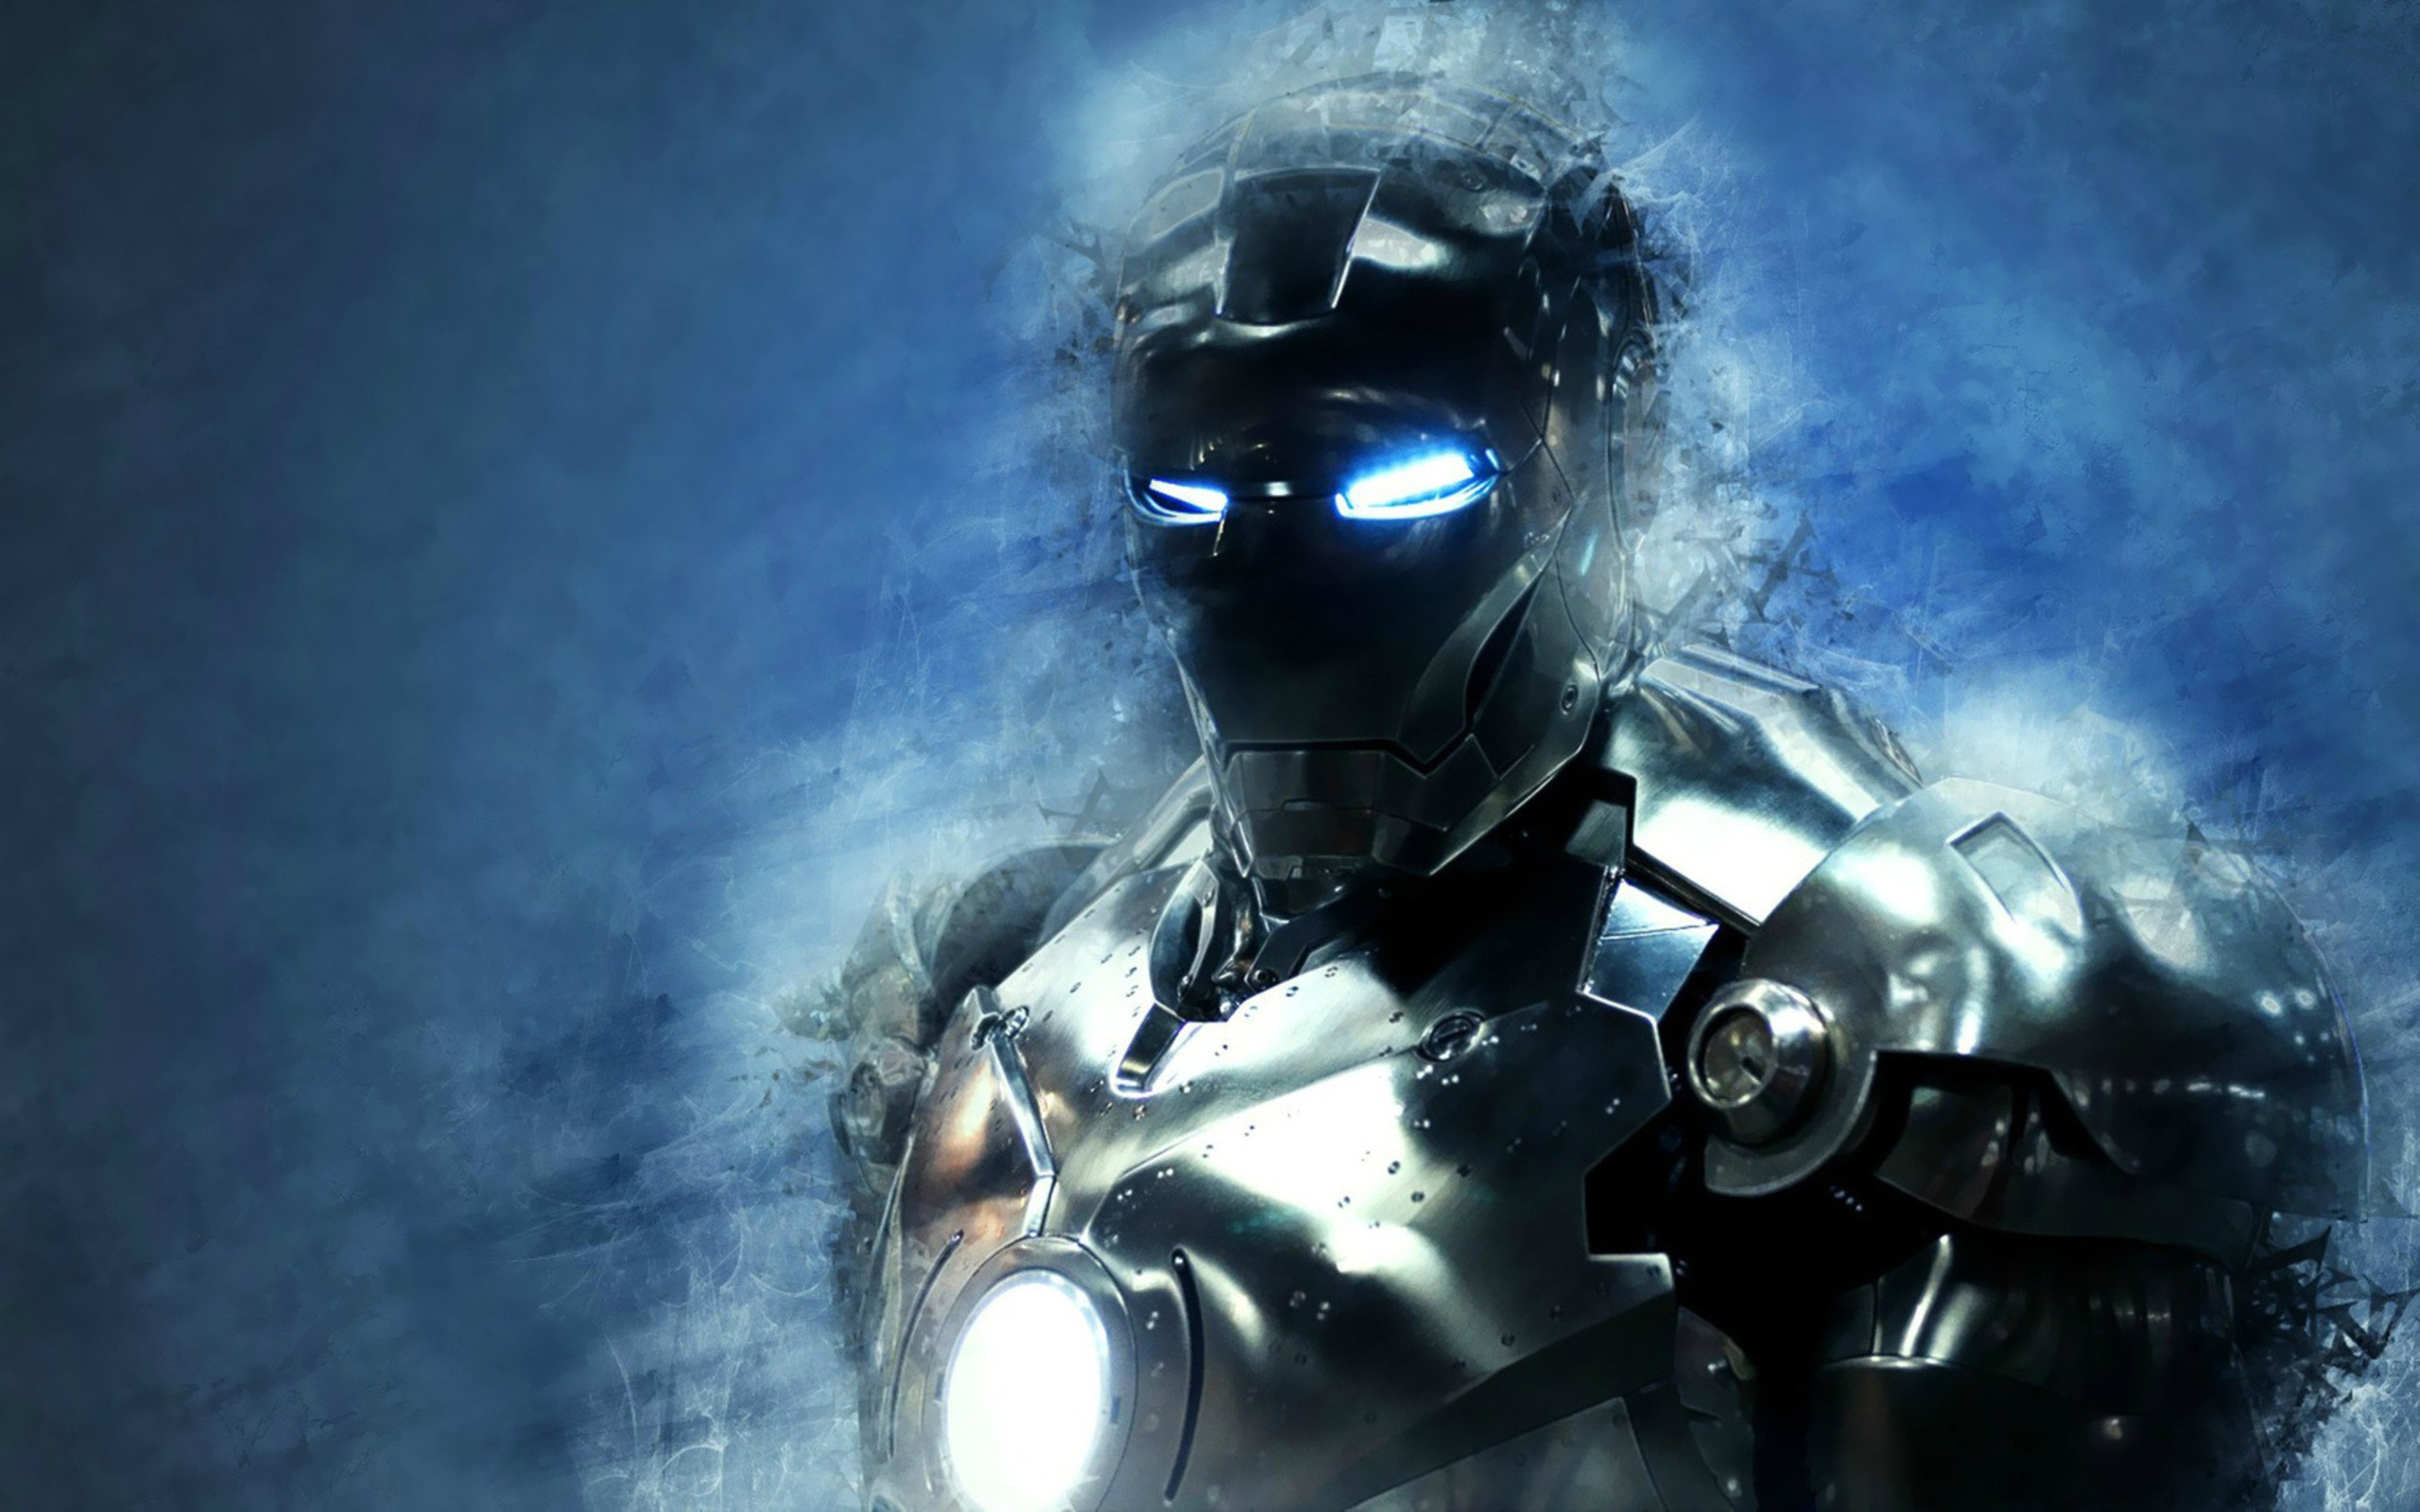 iron man 3 wallpaper 6 | wallpapersbq